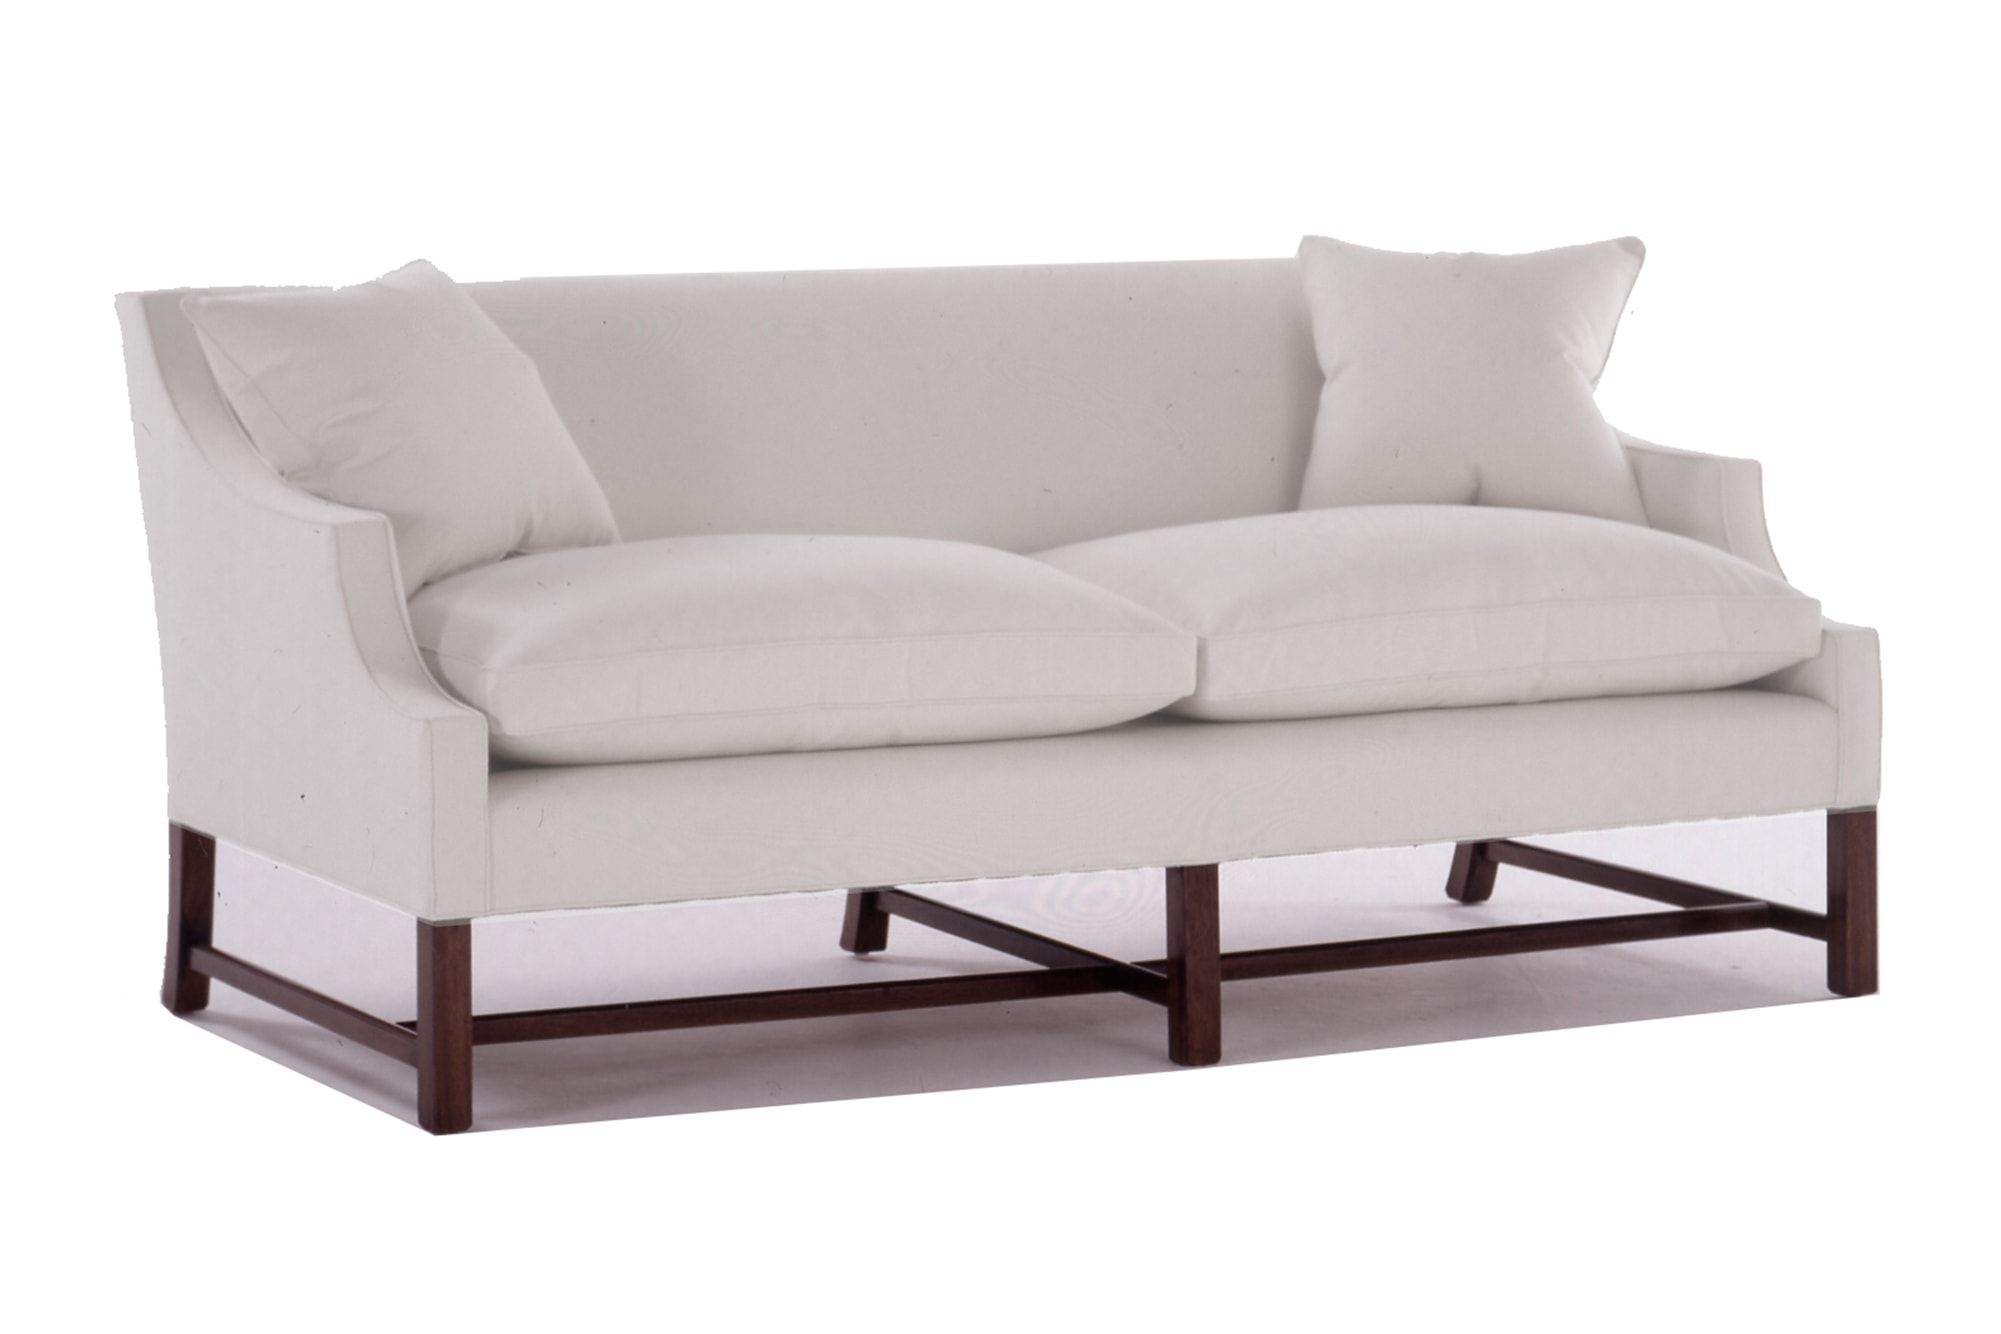 sofa_norfolk-min.jpg